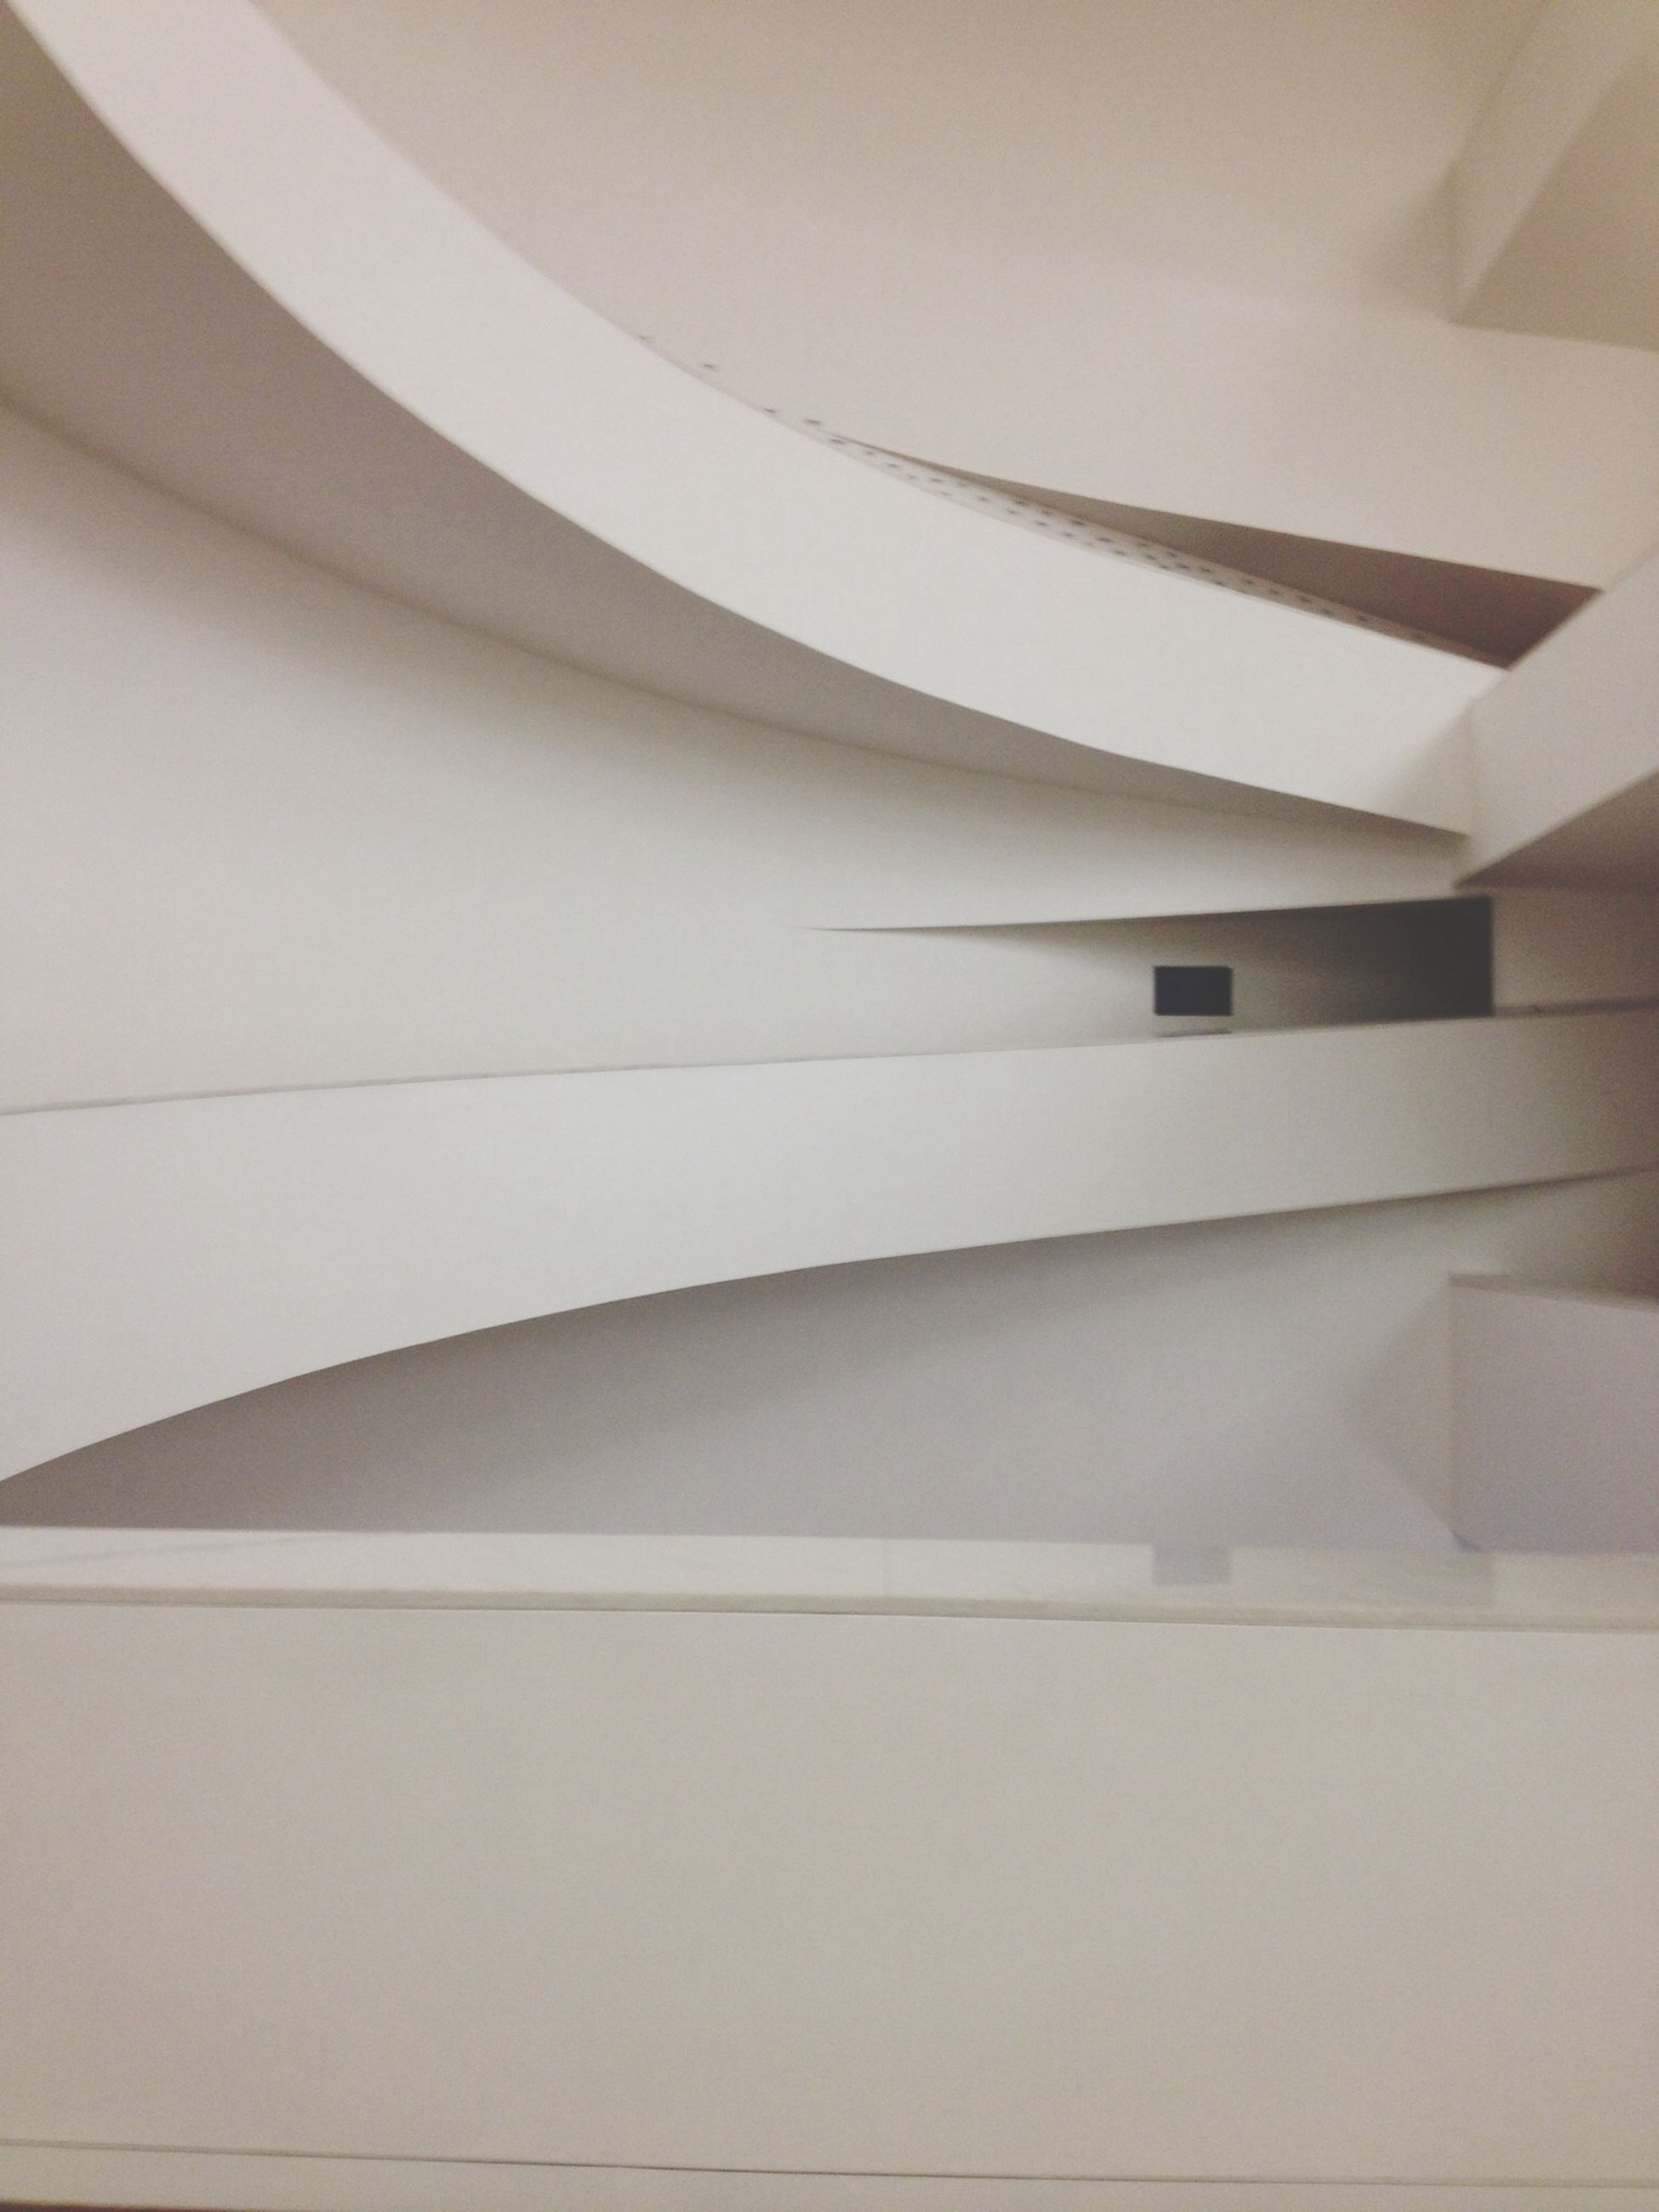 architecture, built structure, low angle view, indoors, ceiling, building exterior, modern, building, no people, architectural feature, directly below, pattern, airplane, part of, wall - building feature, cropped, day, design, white color, sunlight